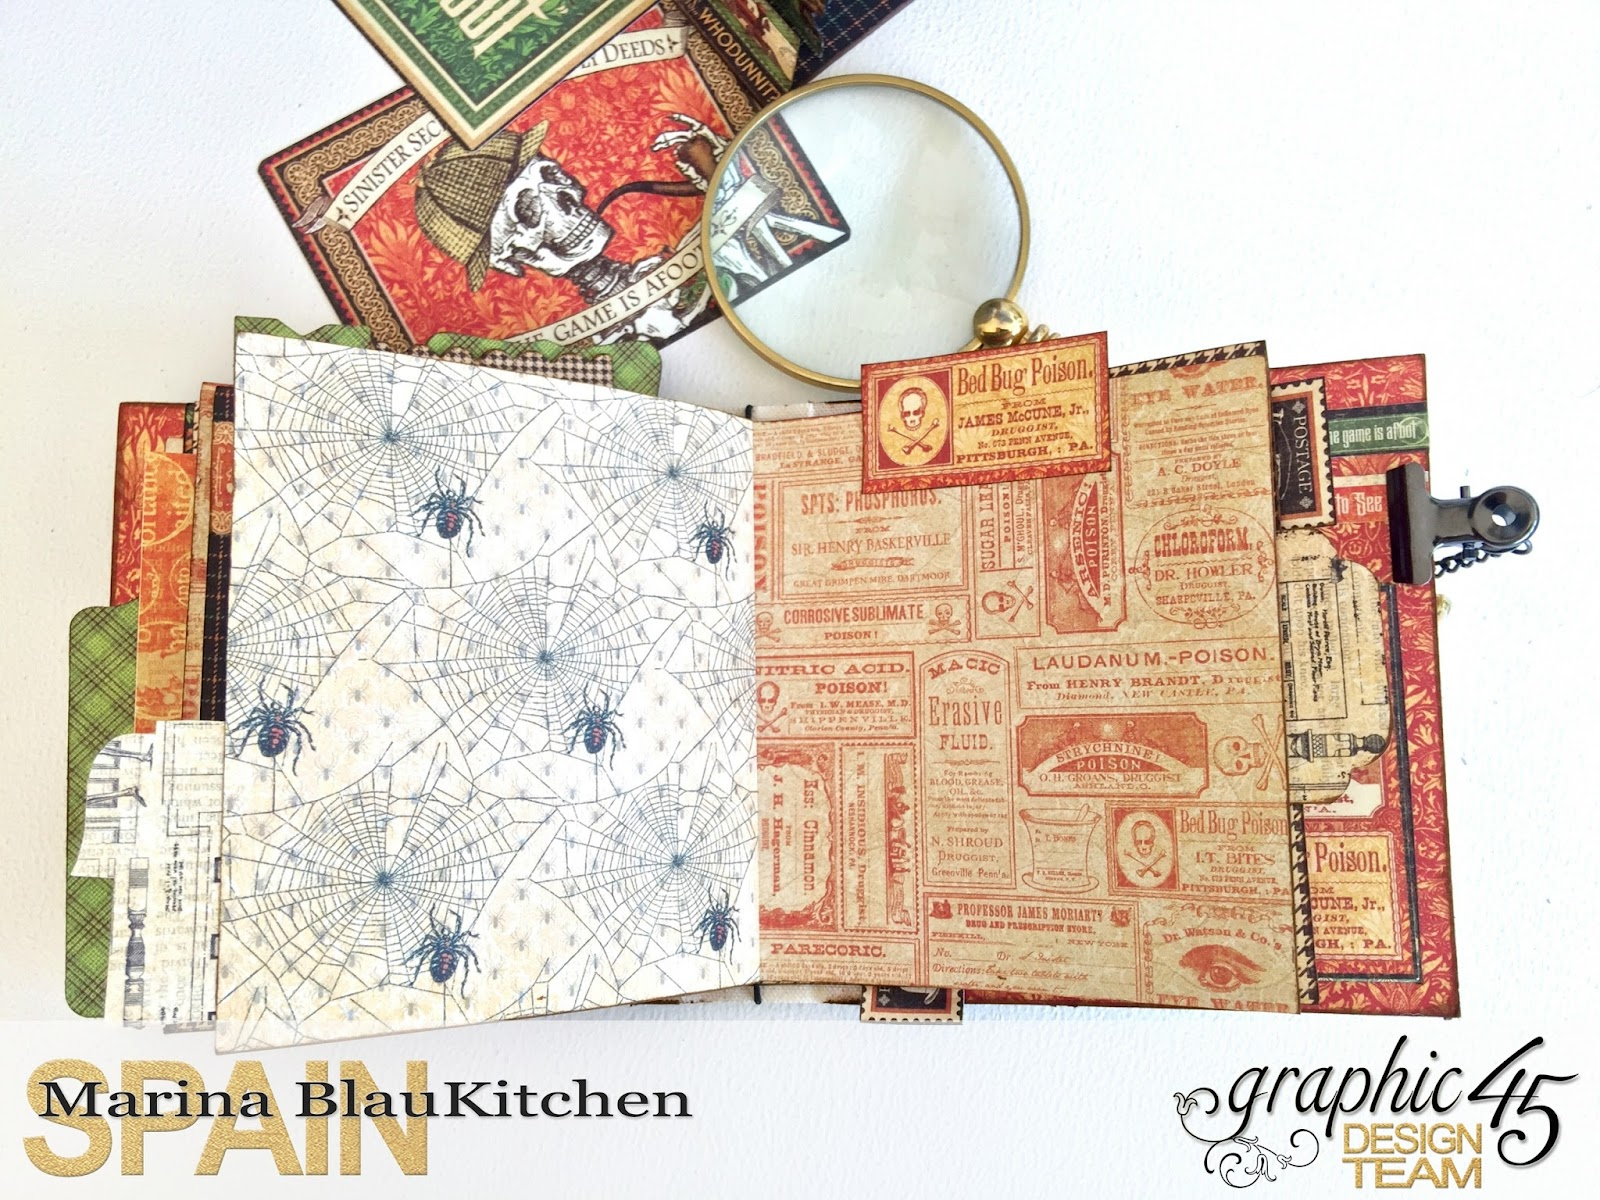 Stand and Mini Album Master Detective by Marina Blaukitchen Product by Graphic 45 photo 22.jpg